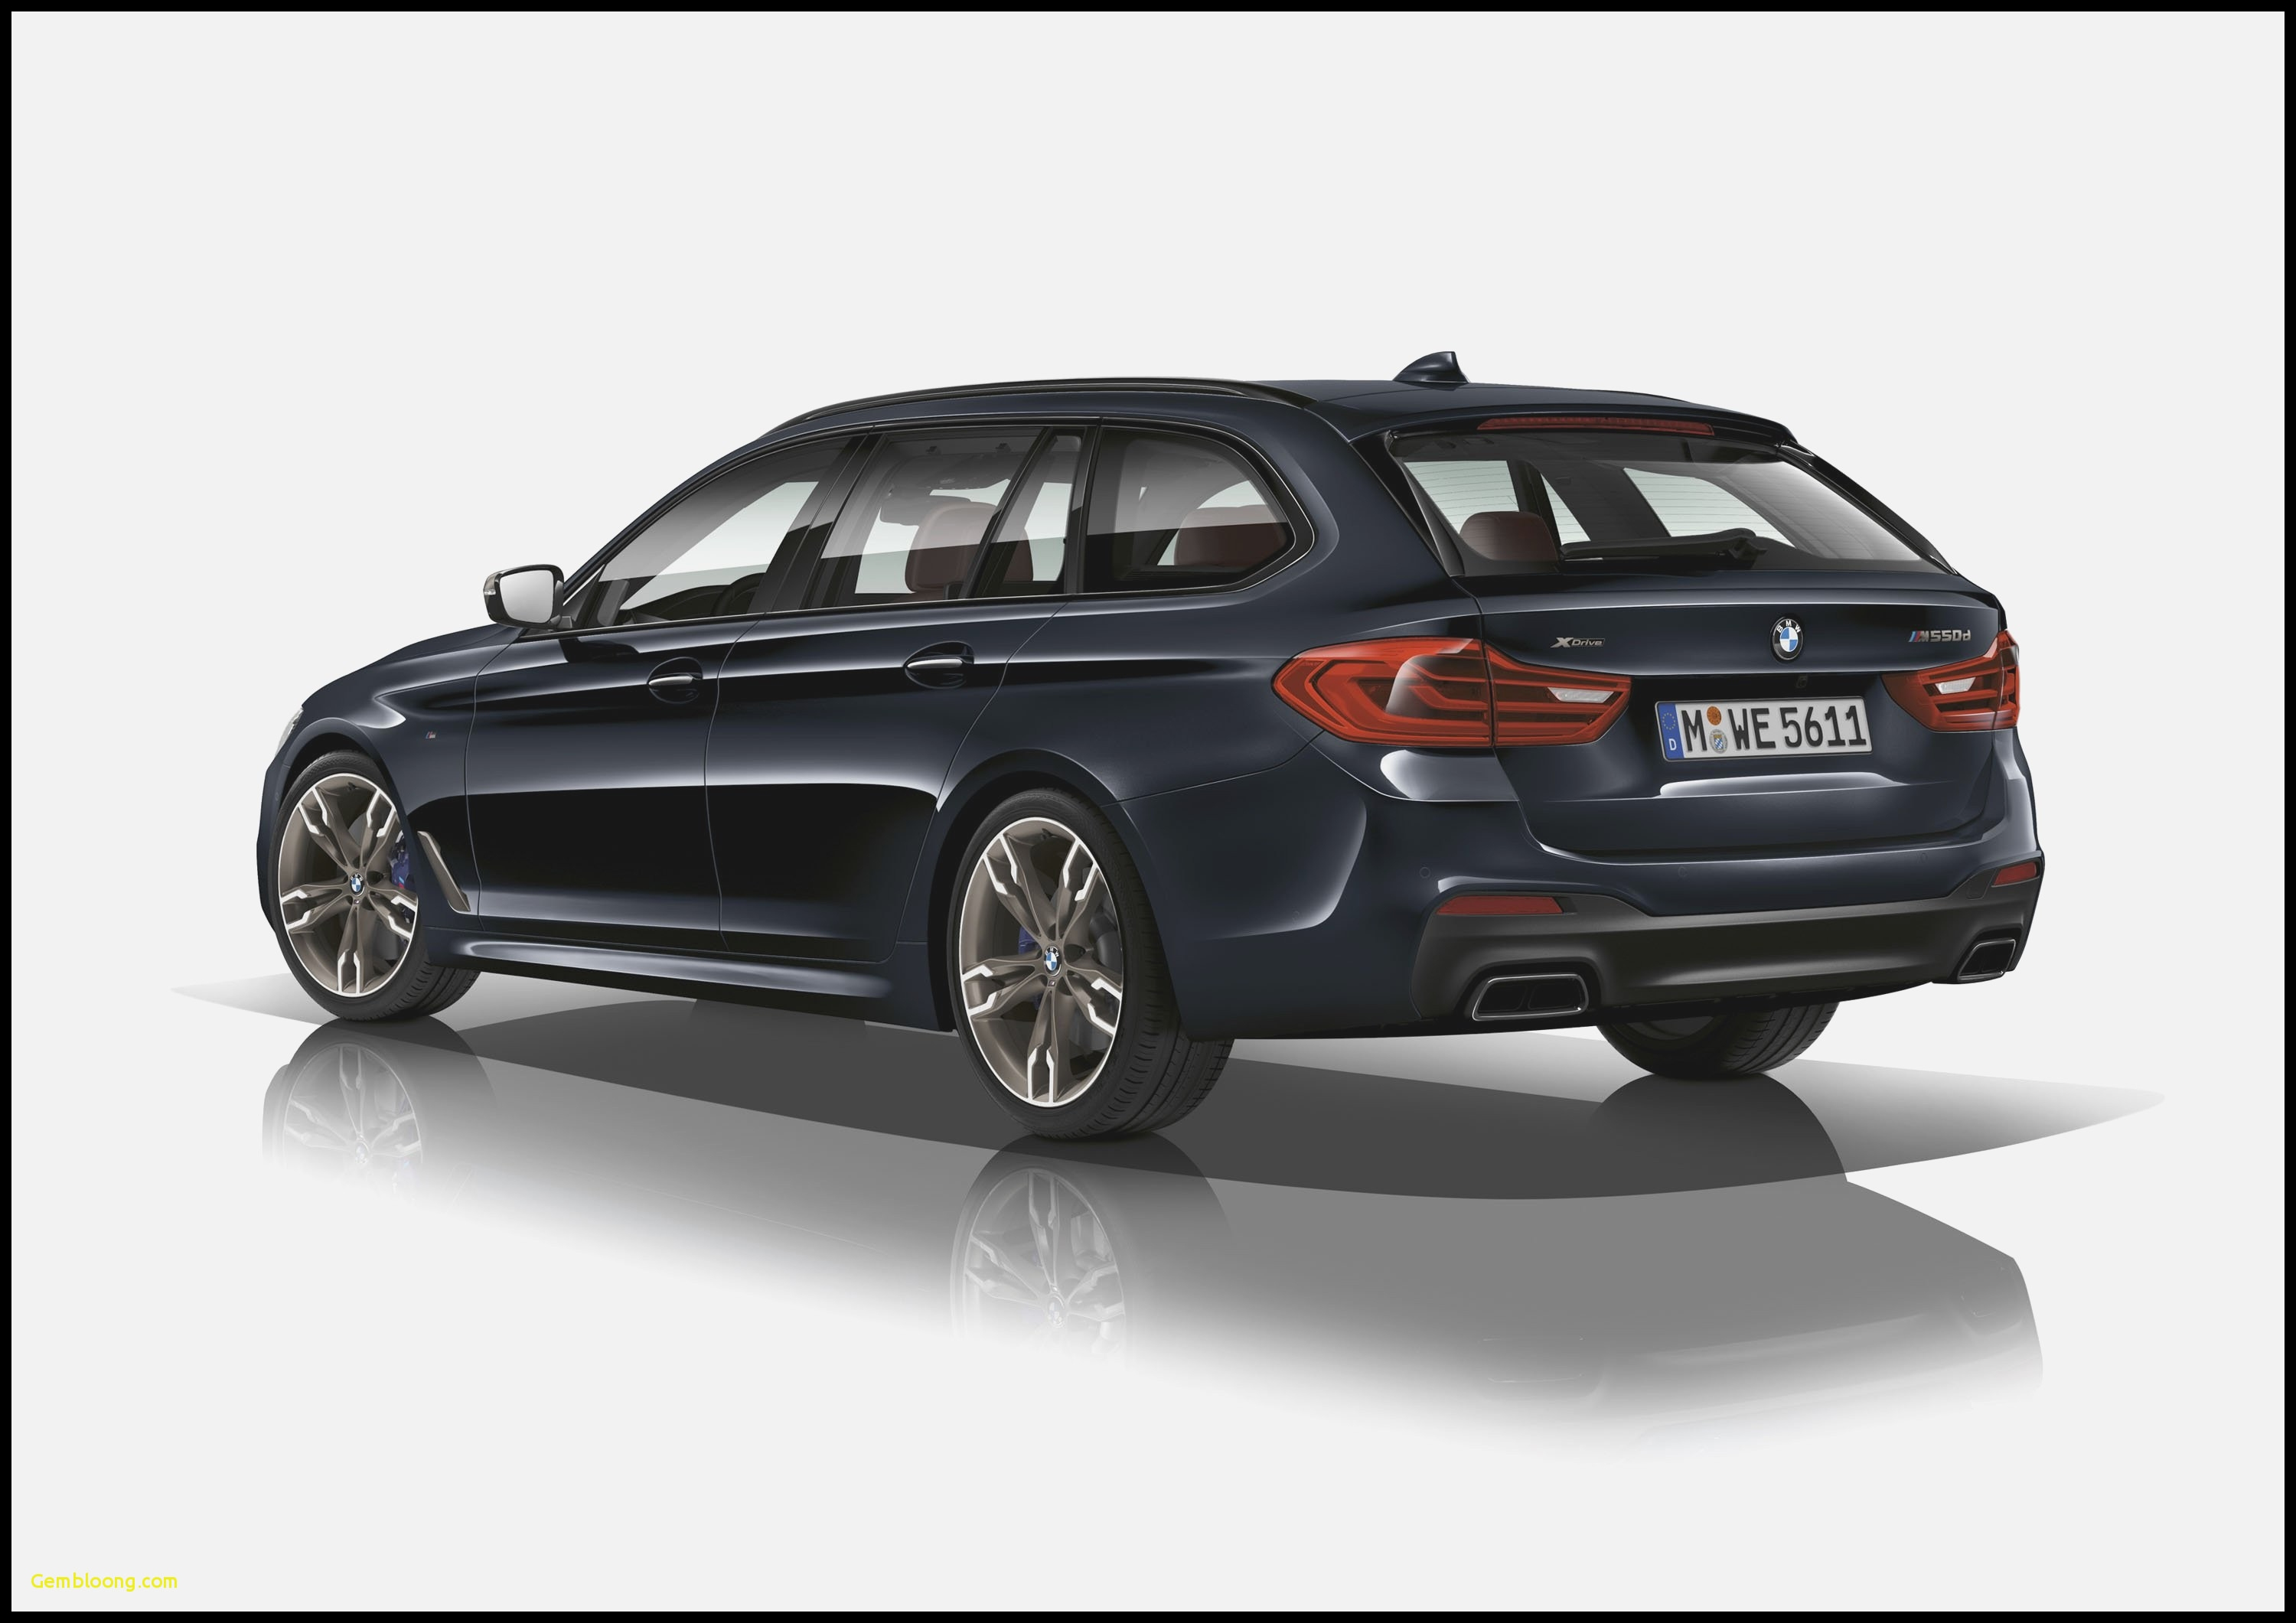 2018 Bmw M550 Hot News 2018 Bmw M550 Bmw 5 Series µ ´ ° ½ 2018